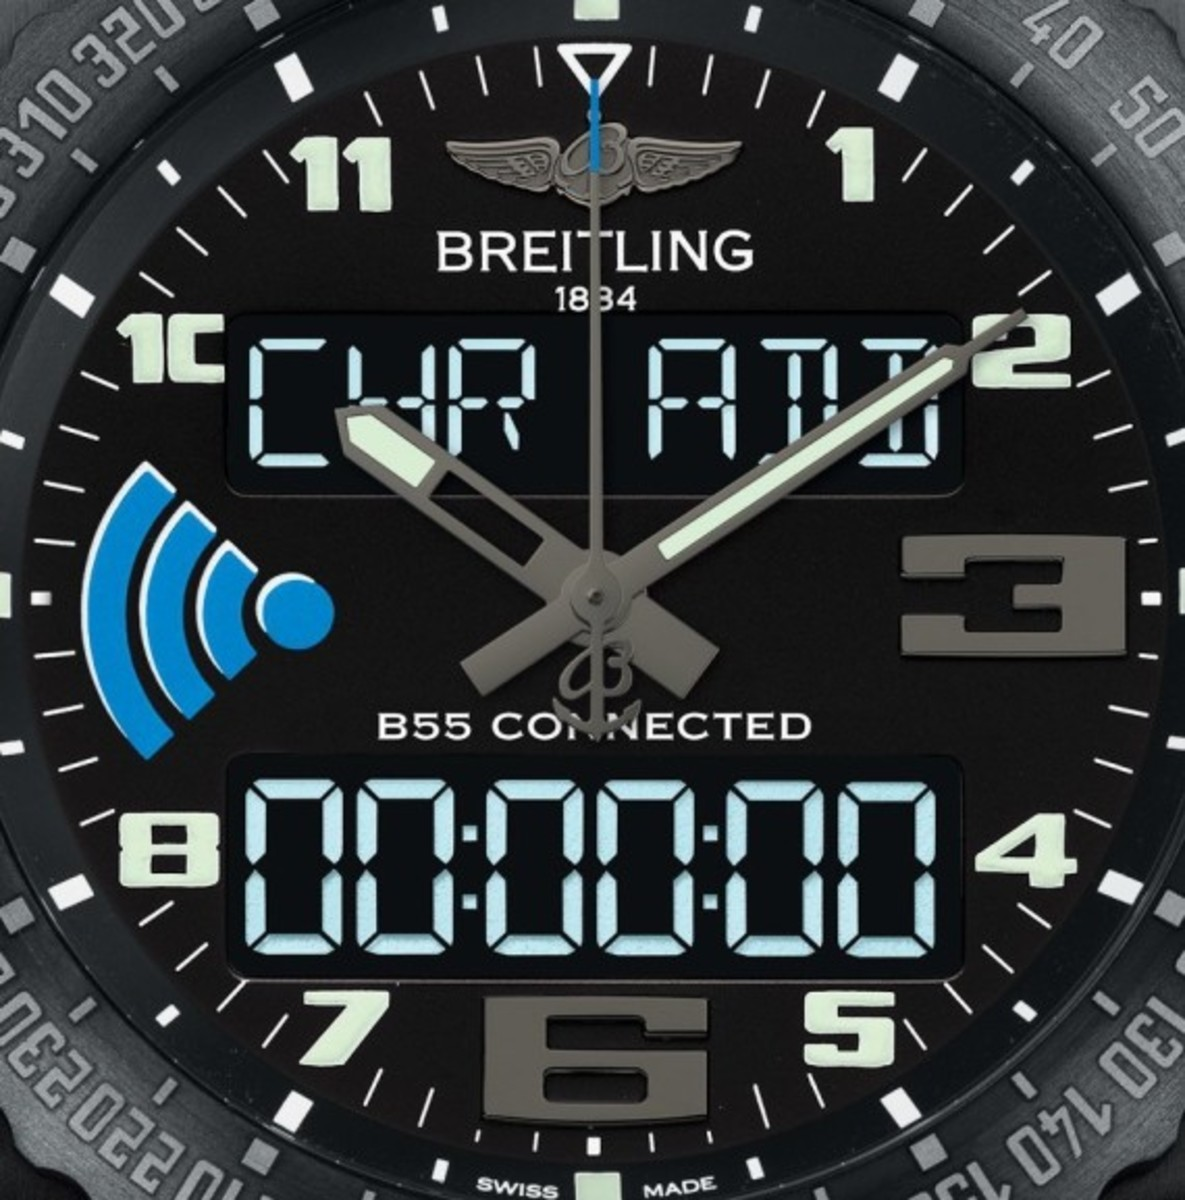 Breitling B55 Connected Watch Pairs with your Phone - 3